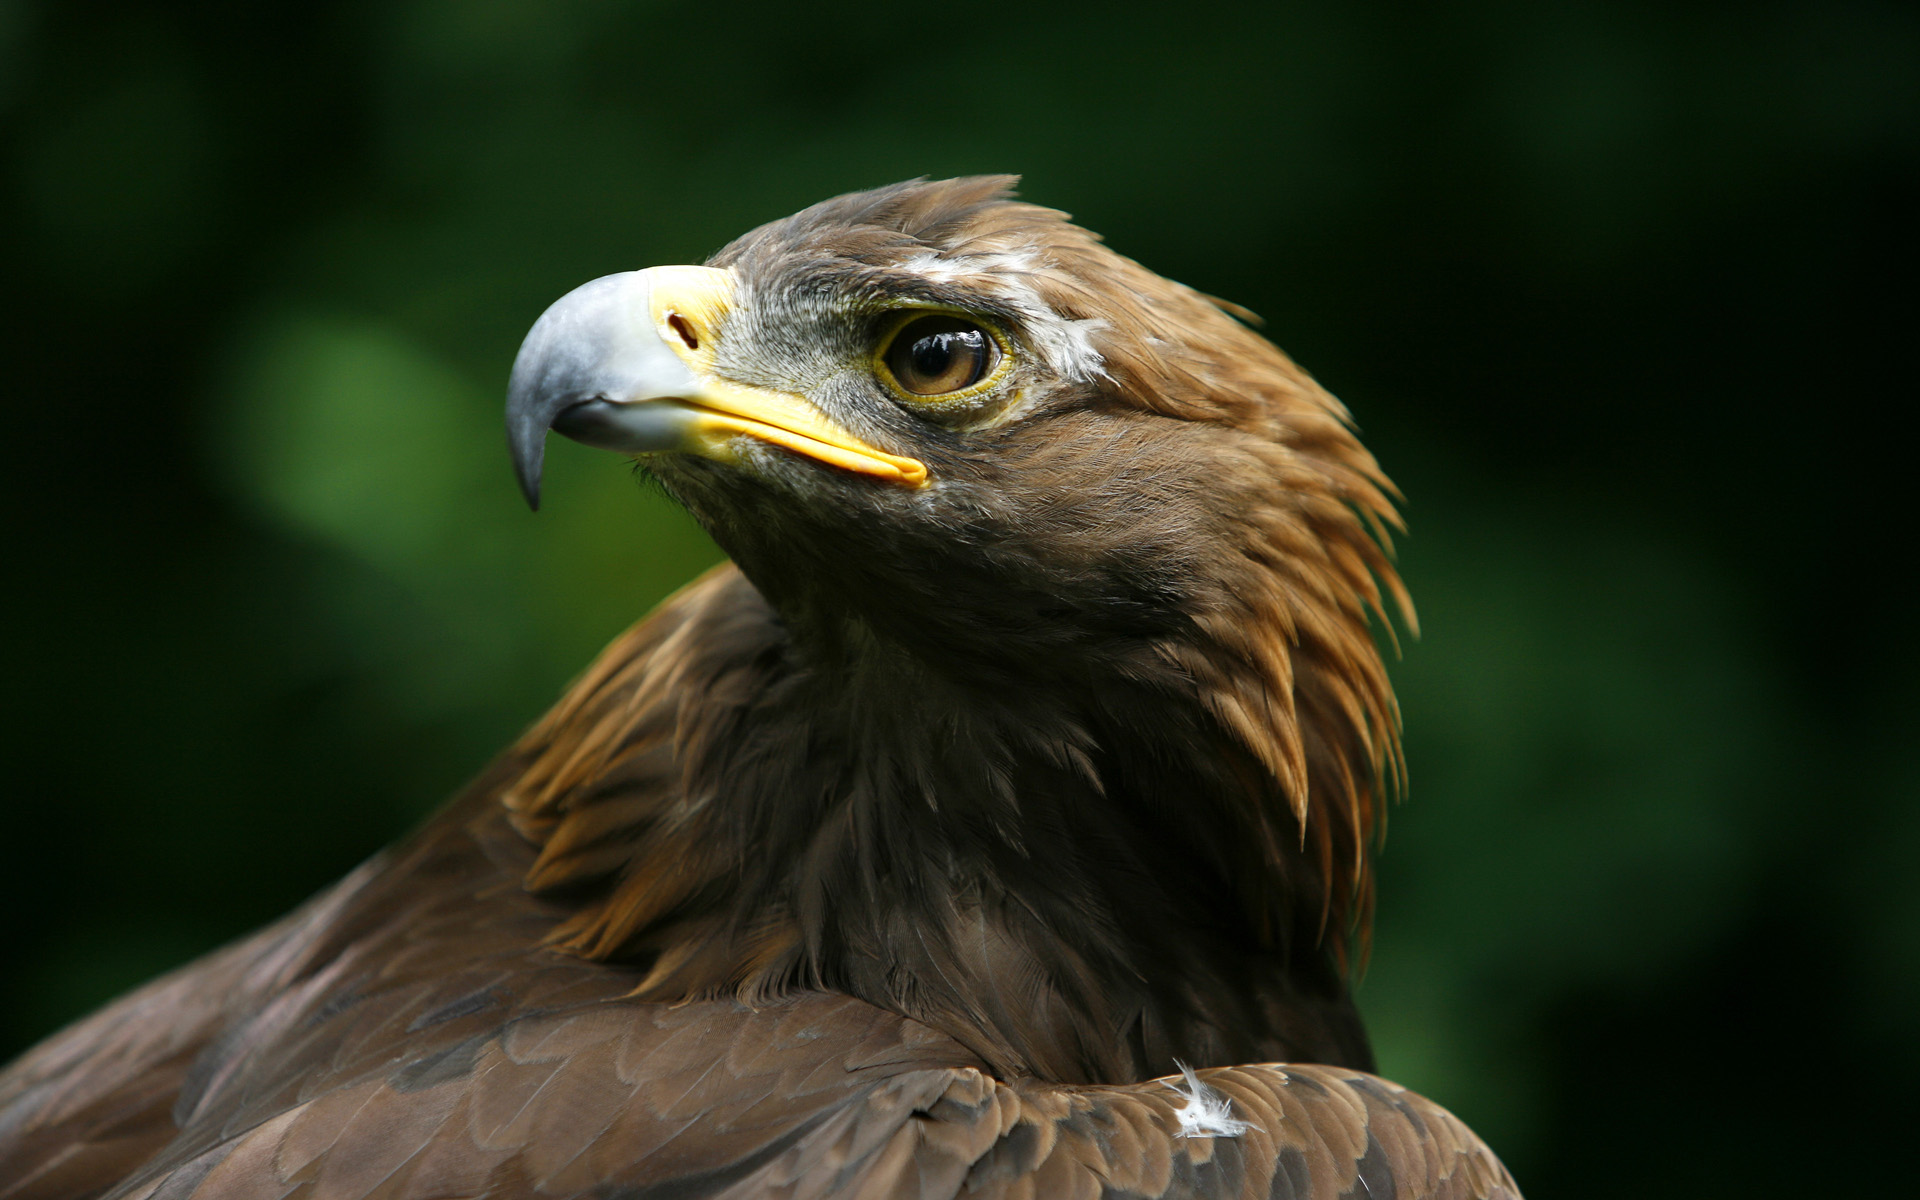 Golden eagle wallpaper 624223 Pictures of birds